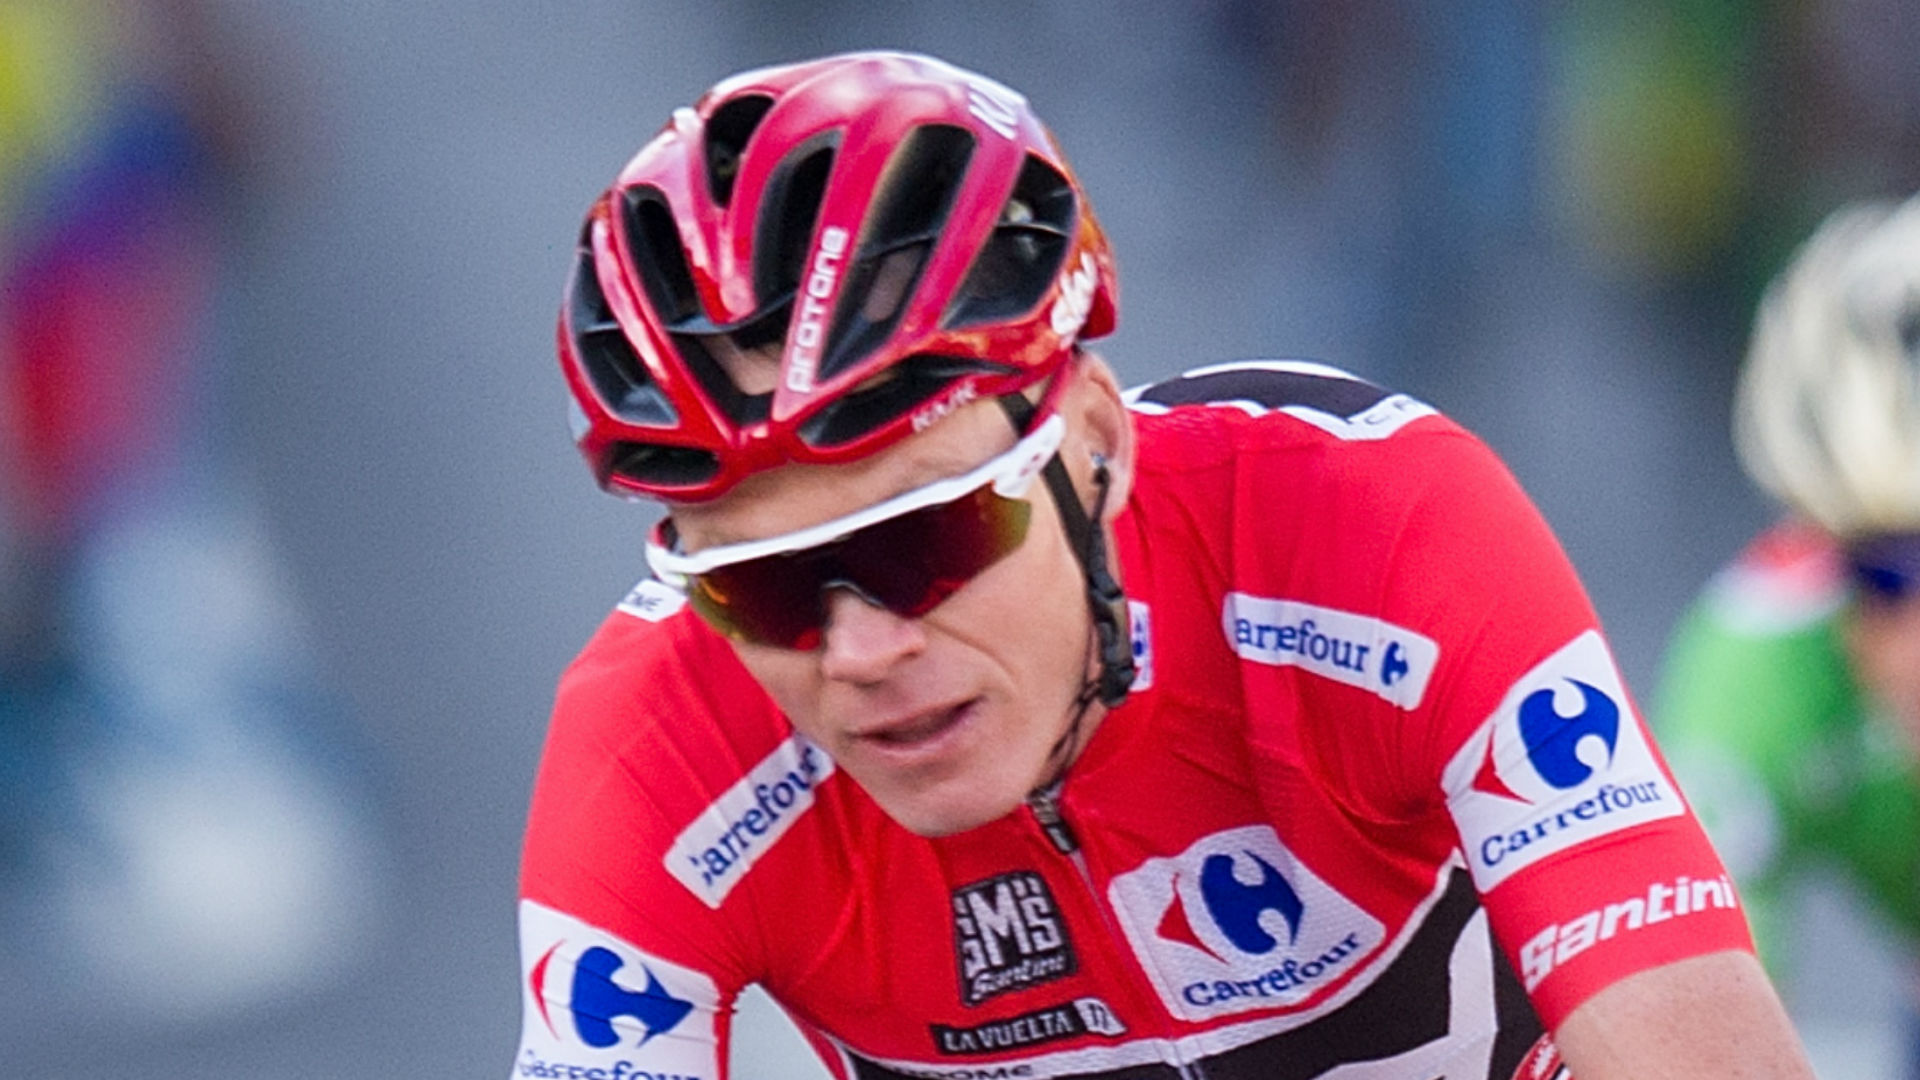 Tour great Froome dismisses fitness concerns